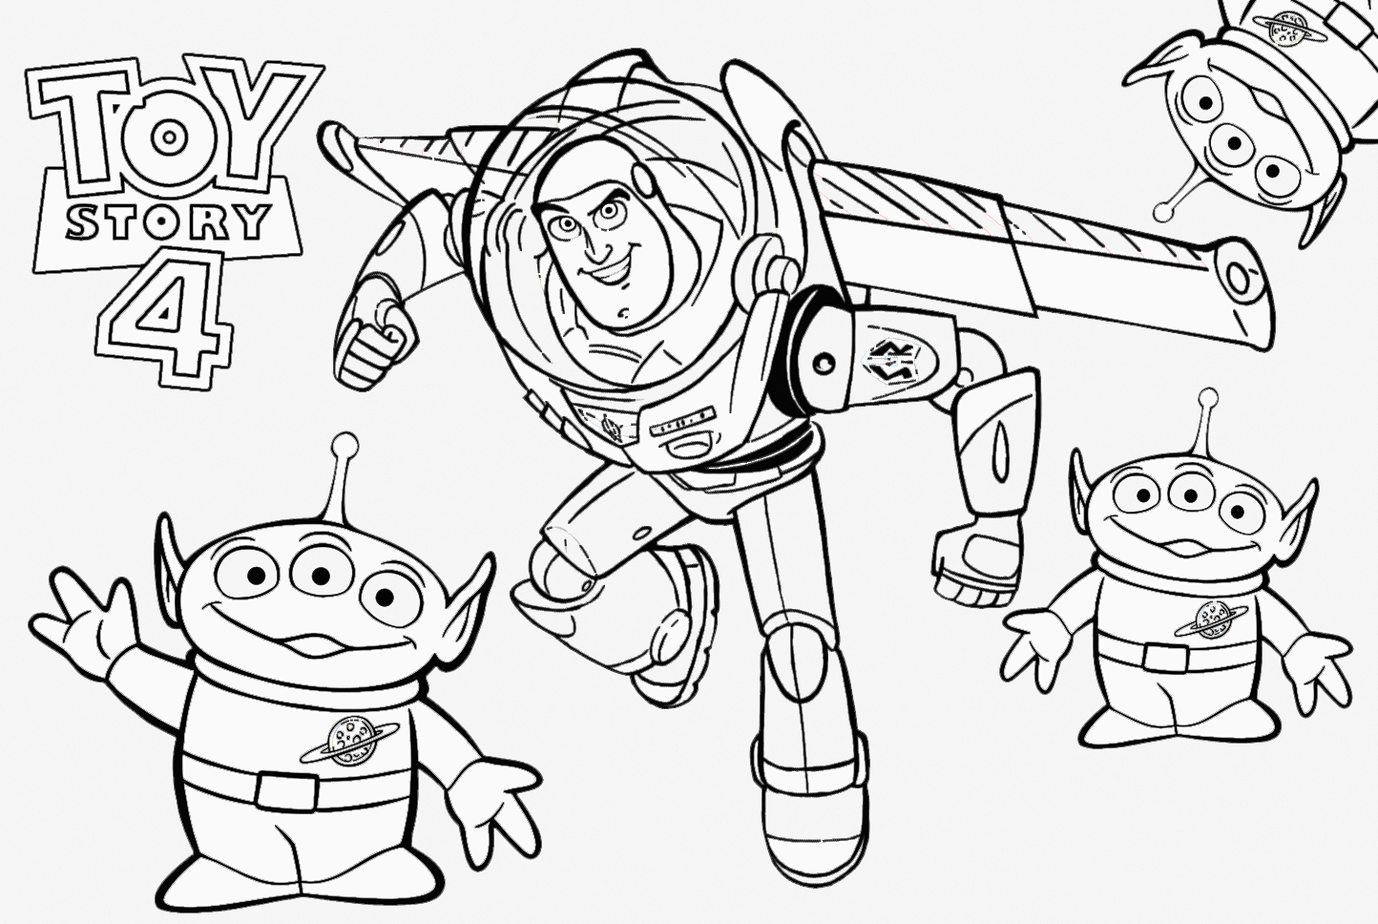 Buzz Lightyear with his wings - Toy Story Kids Coloring Pages | 924x1378